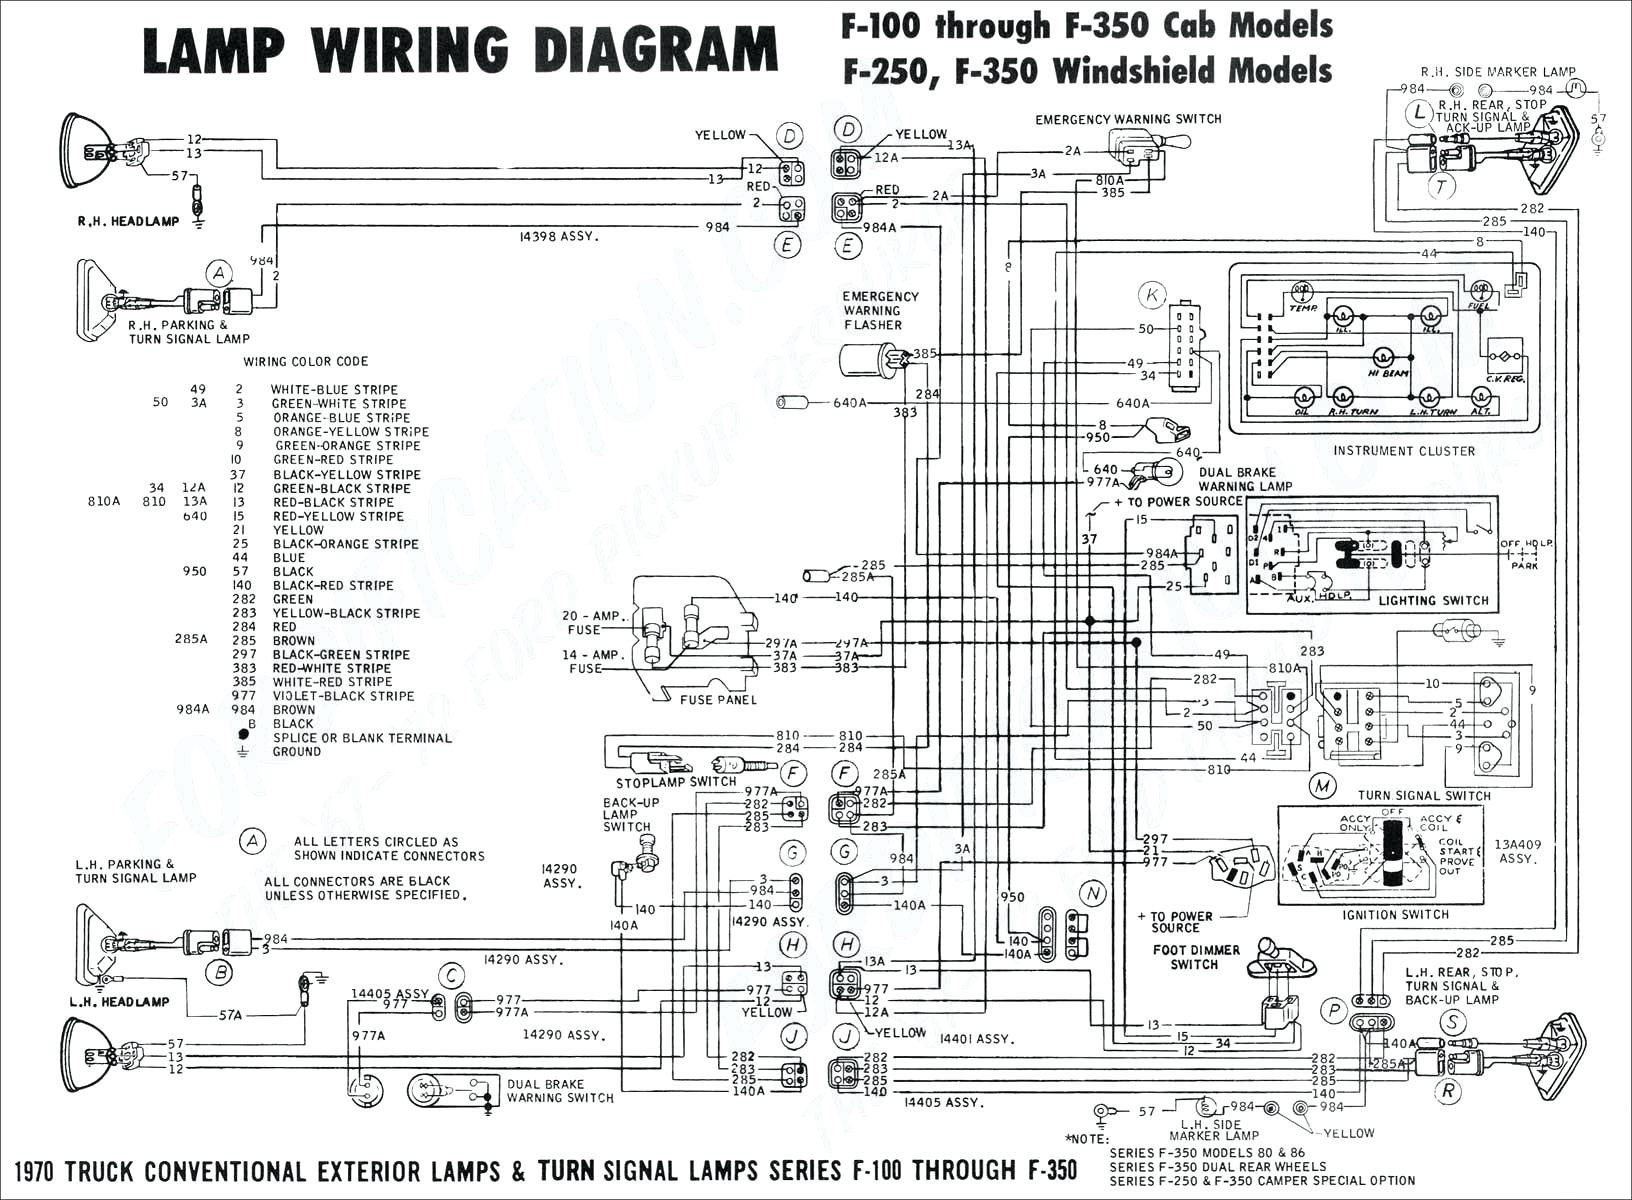 1994 Ford F150 Ignition Switch Wiring Diagram from wholefoodsonabudget.com